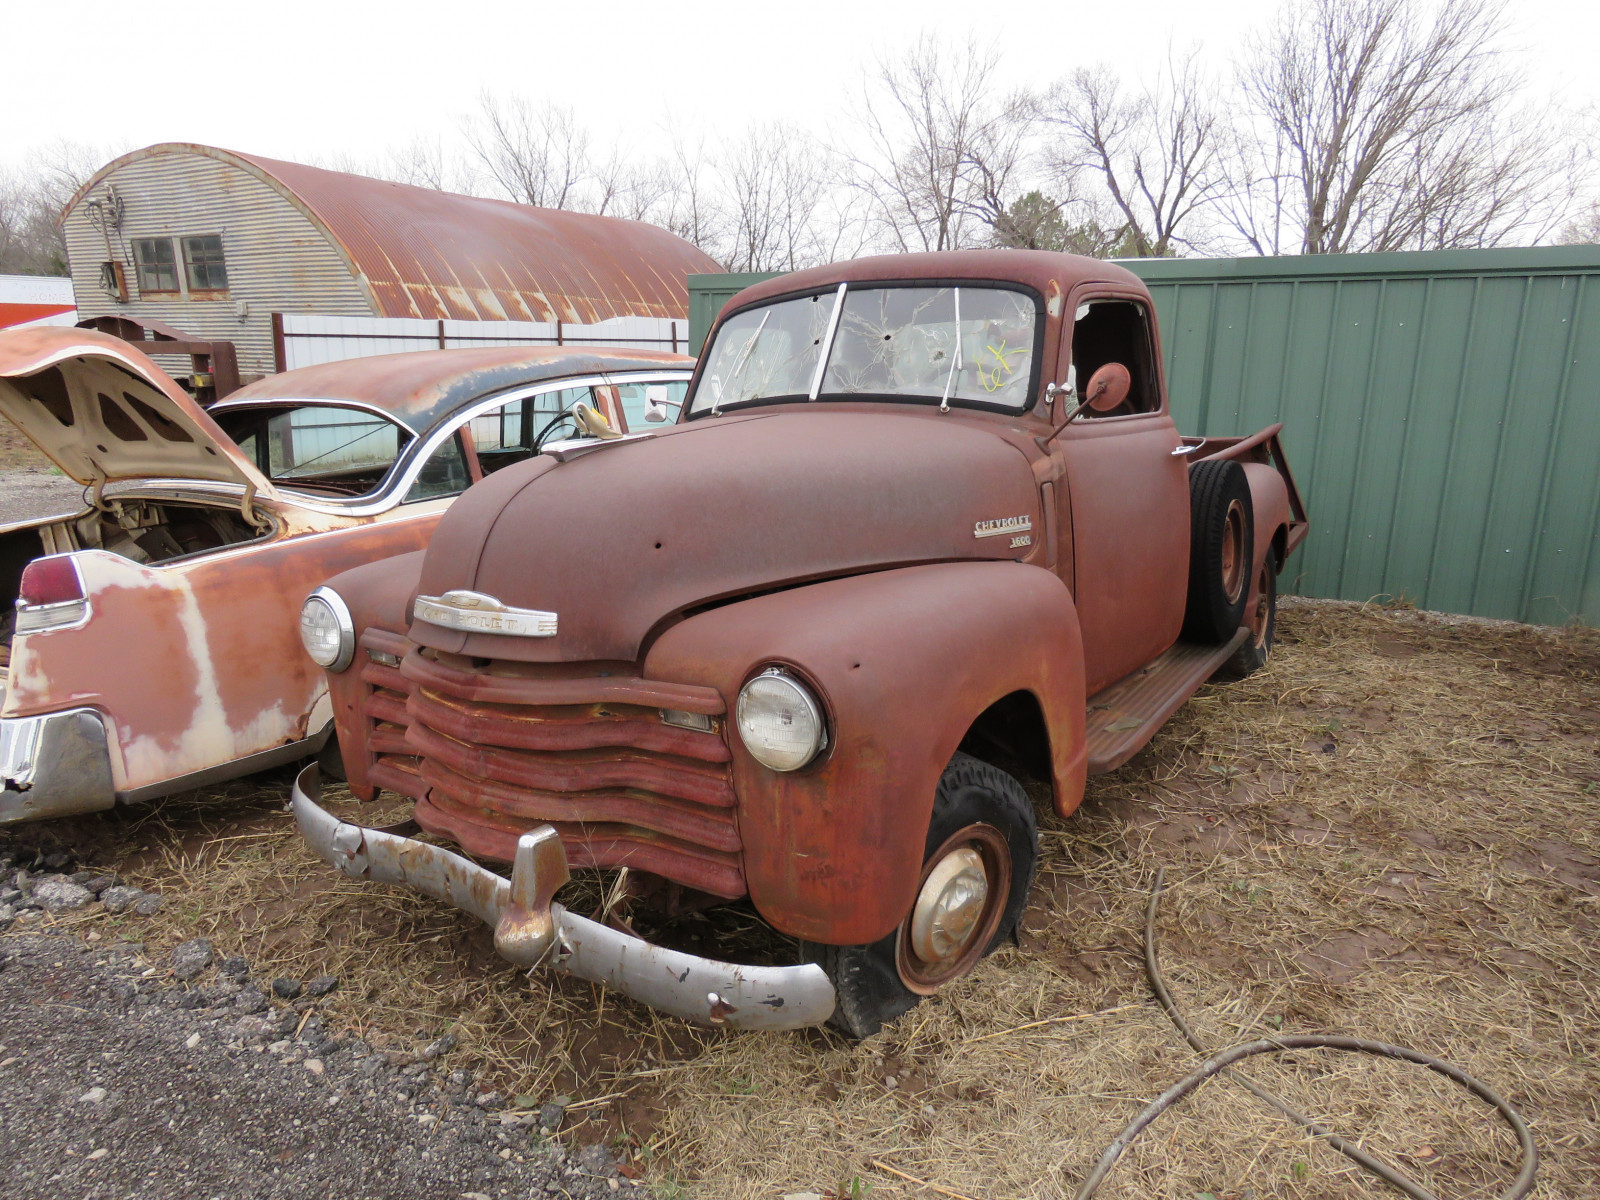 1949 Chevrolet 3600 Series Pickup 5GRA2194 - Image 1